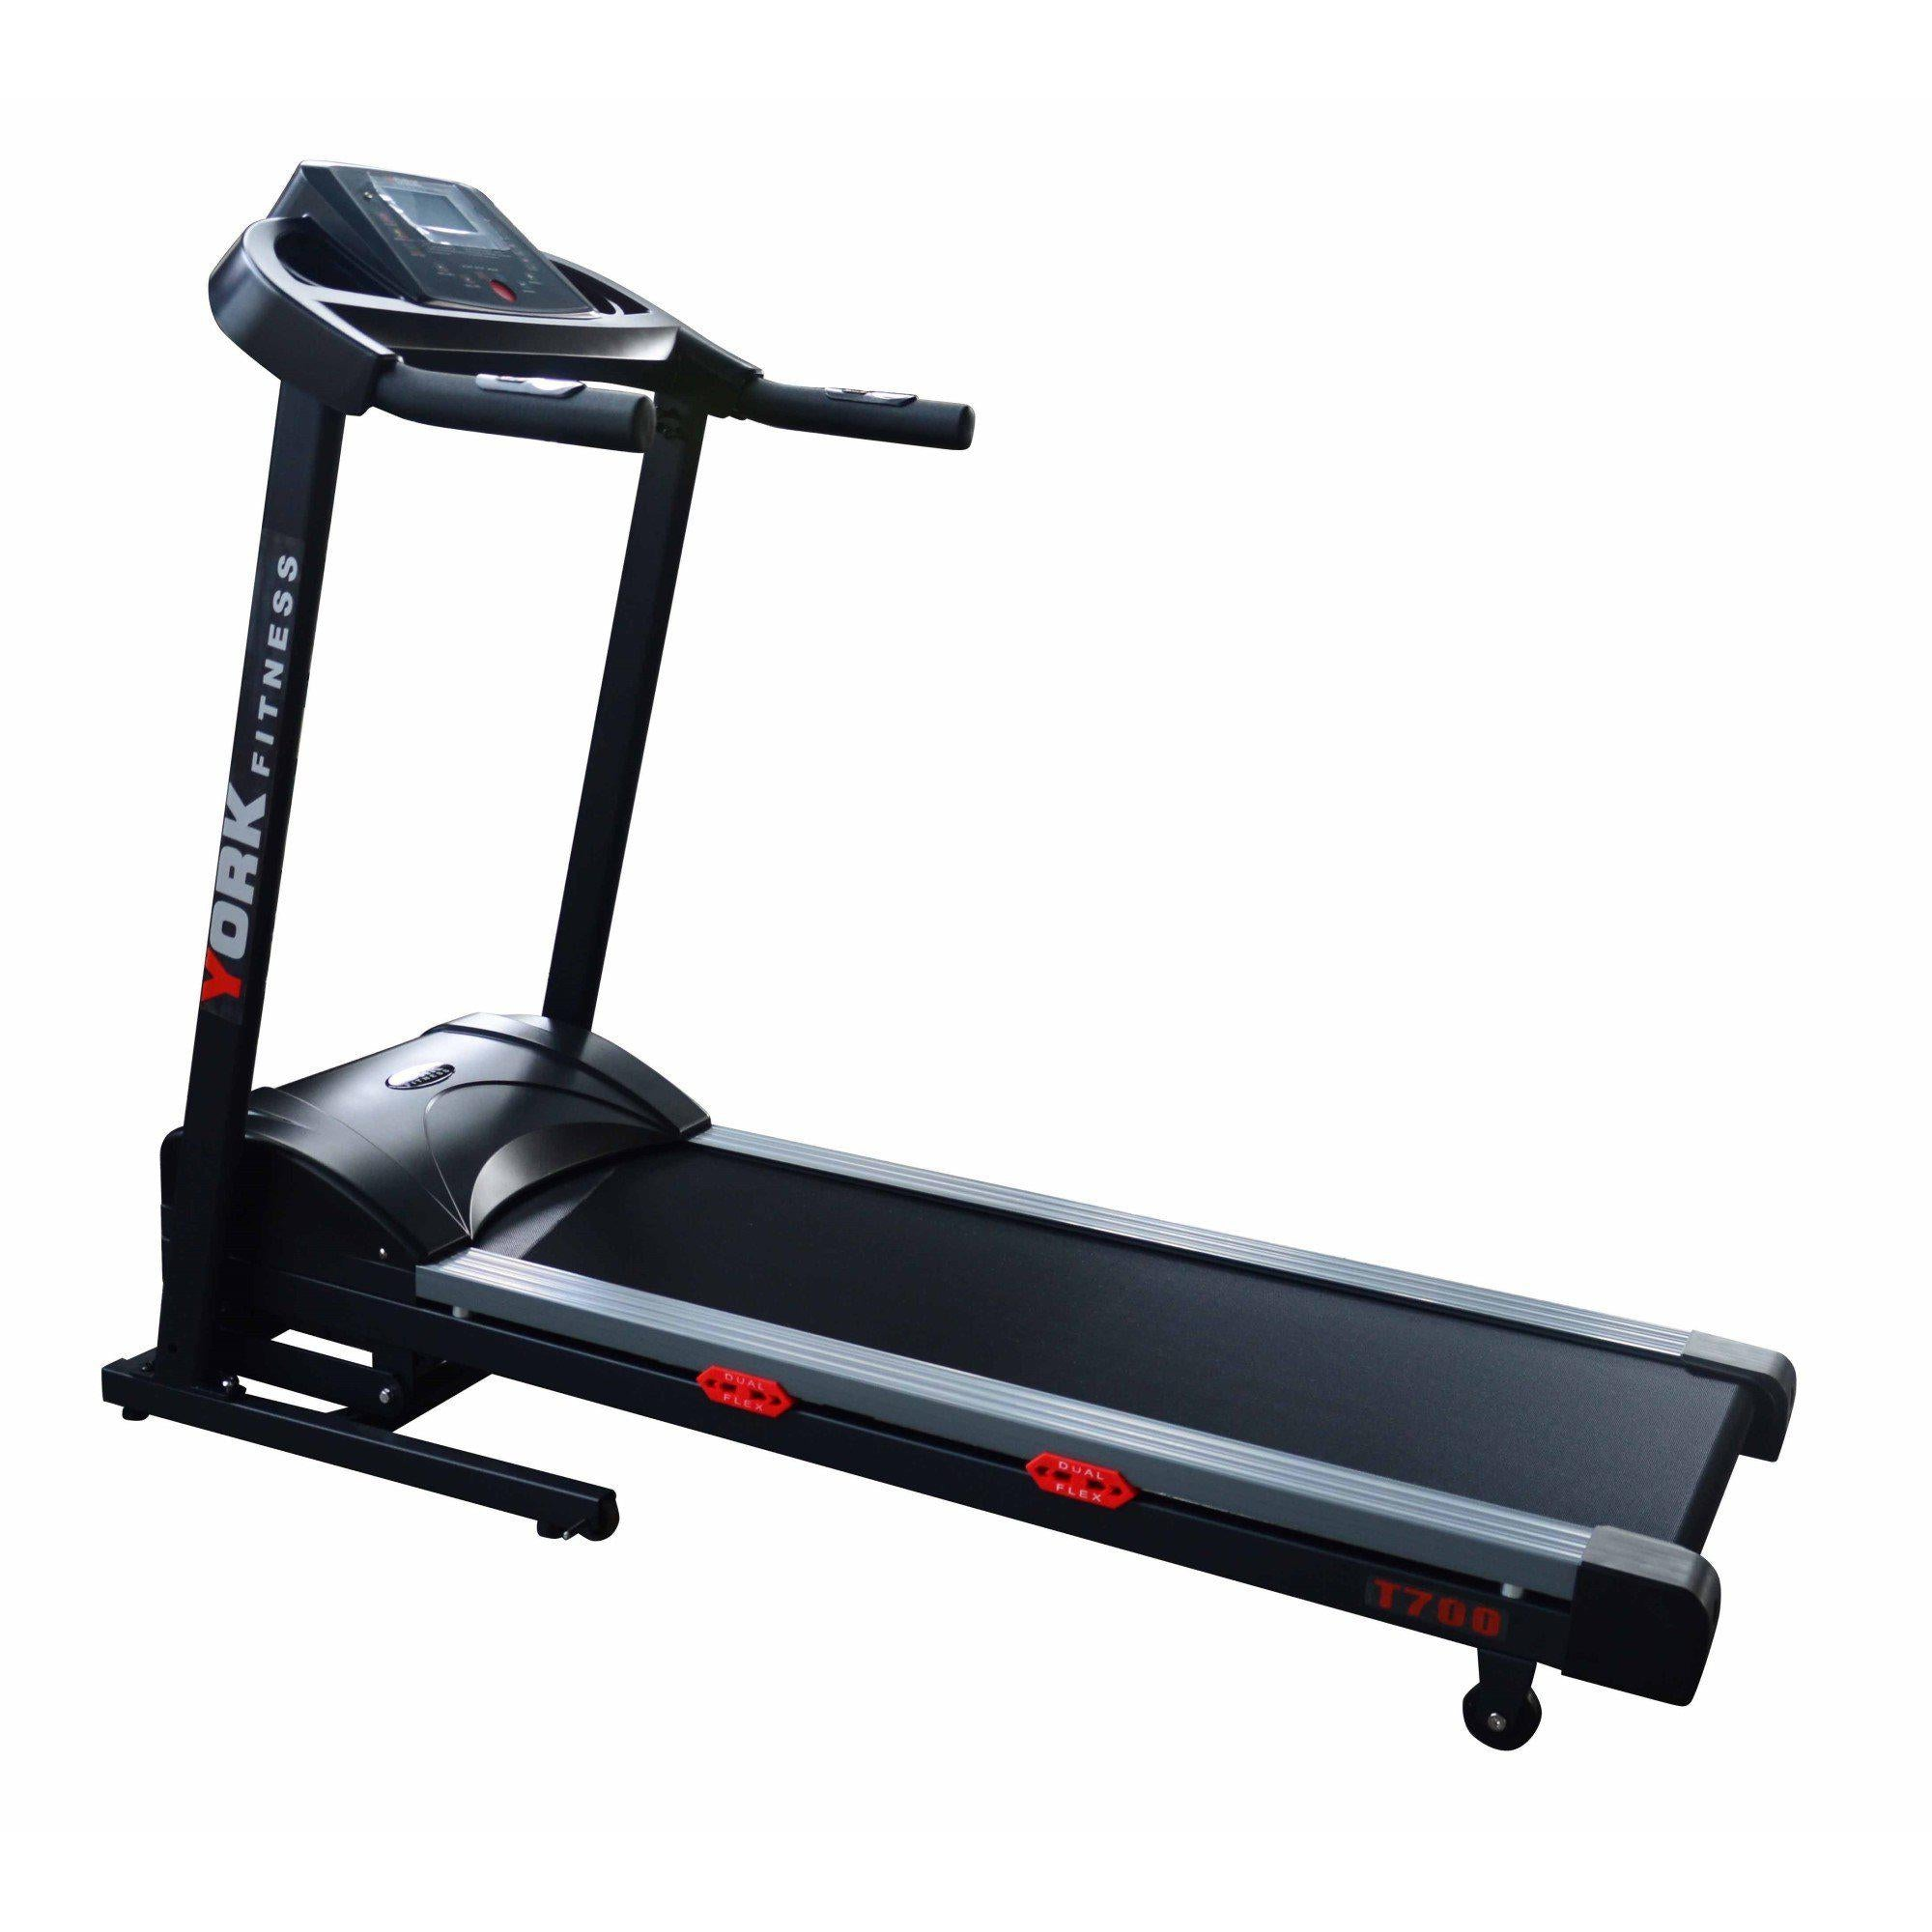 York T700 Treadmill